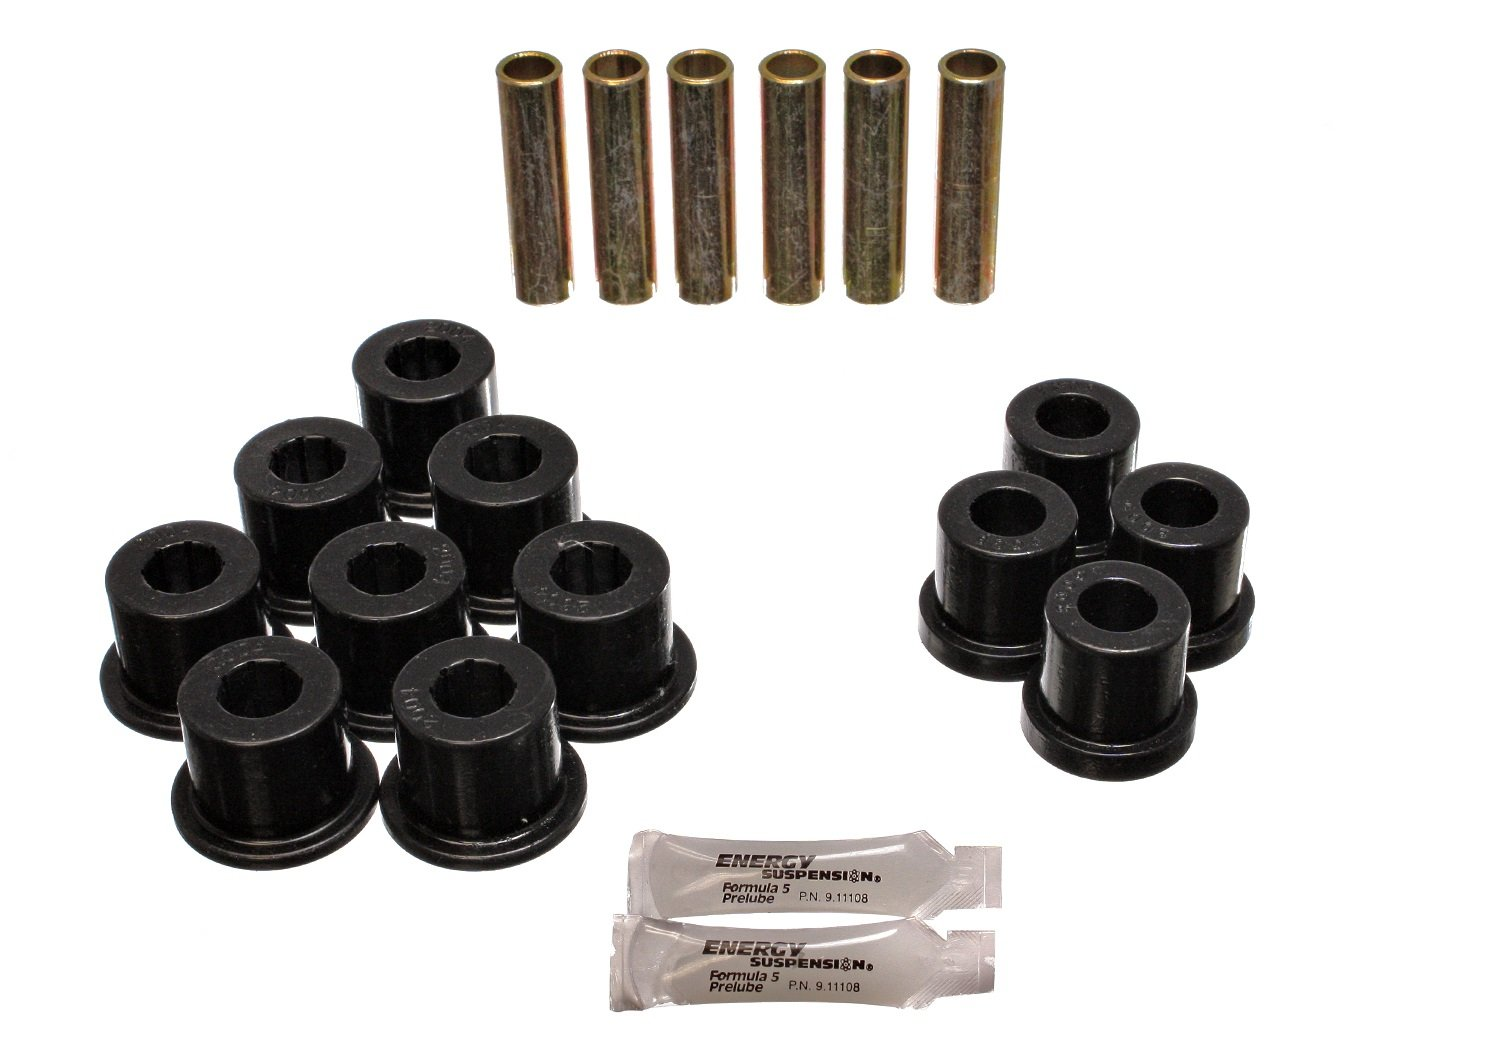 Energy Suspension 3.2108G Rear Spring Bush for GM 2 and 4WD